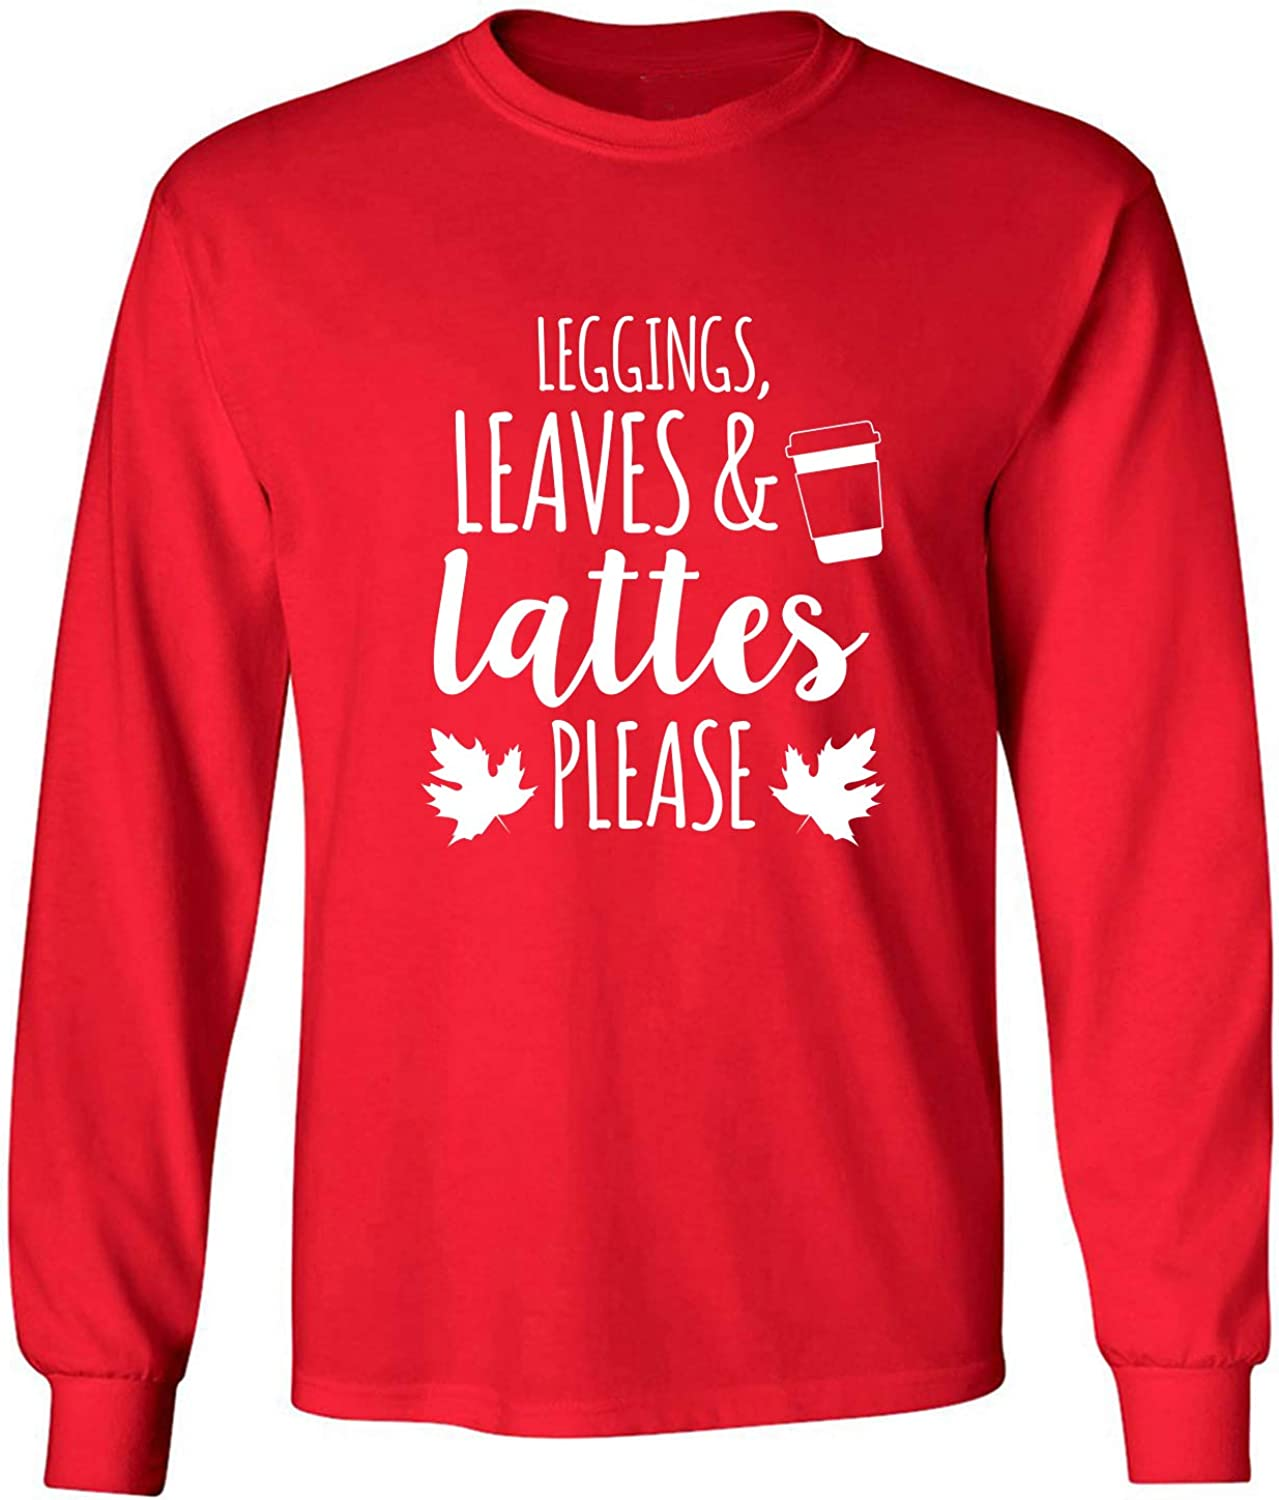 Leggings, Leaves & Lattes Please Adult Long Sleeve T-Shirt in Red - XXXX-Large